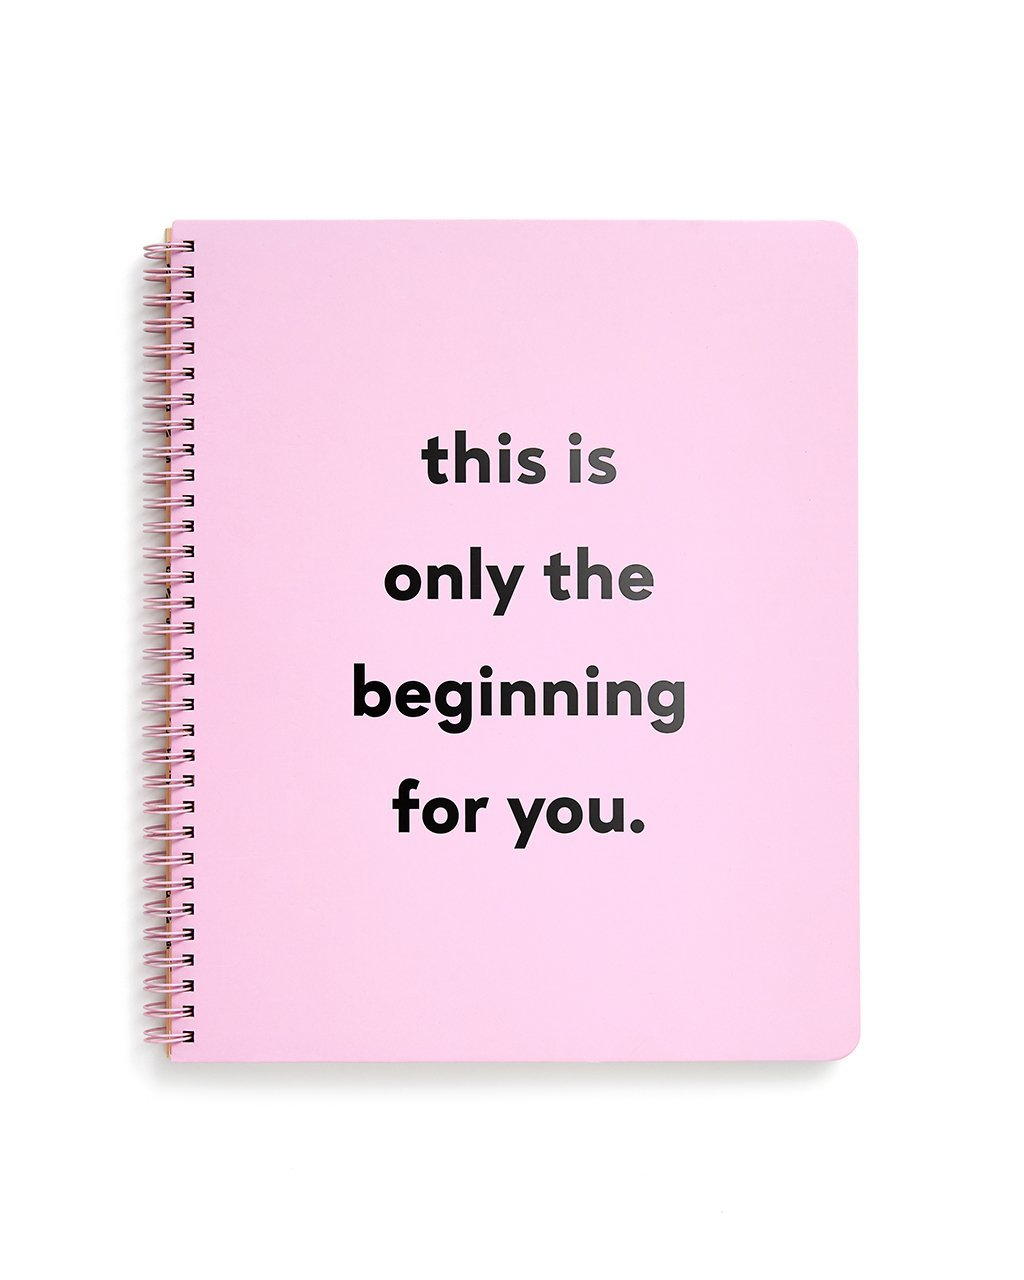 bando-il-rough_draft_mini_notebook-only_the_beginning-01.jpg